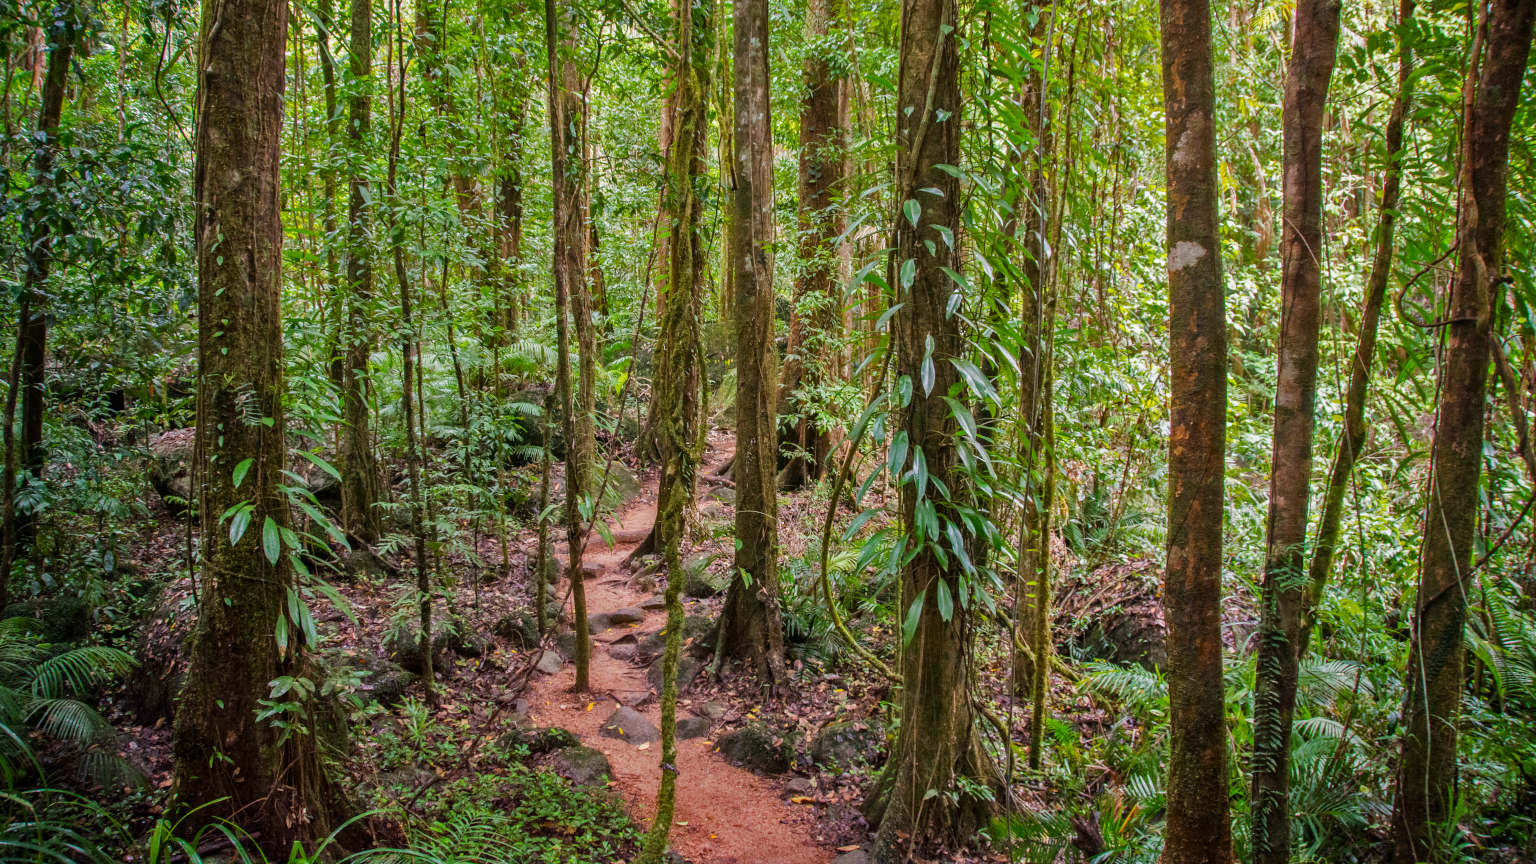 Daintree Rainforest interpretive walk.